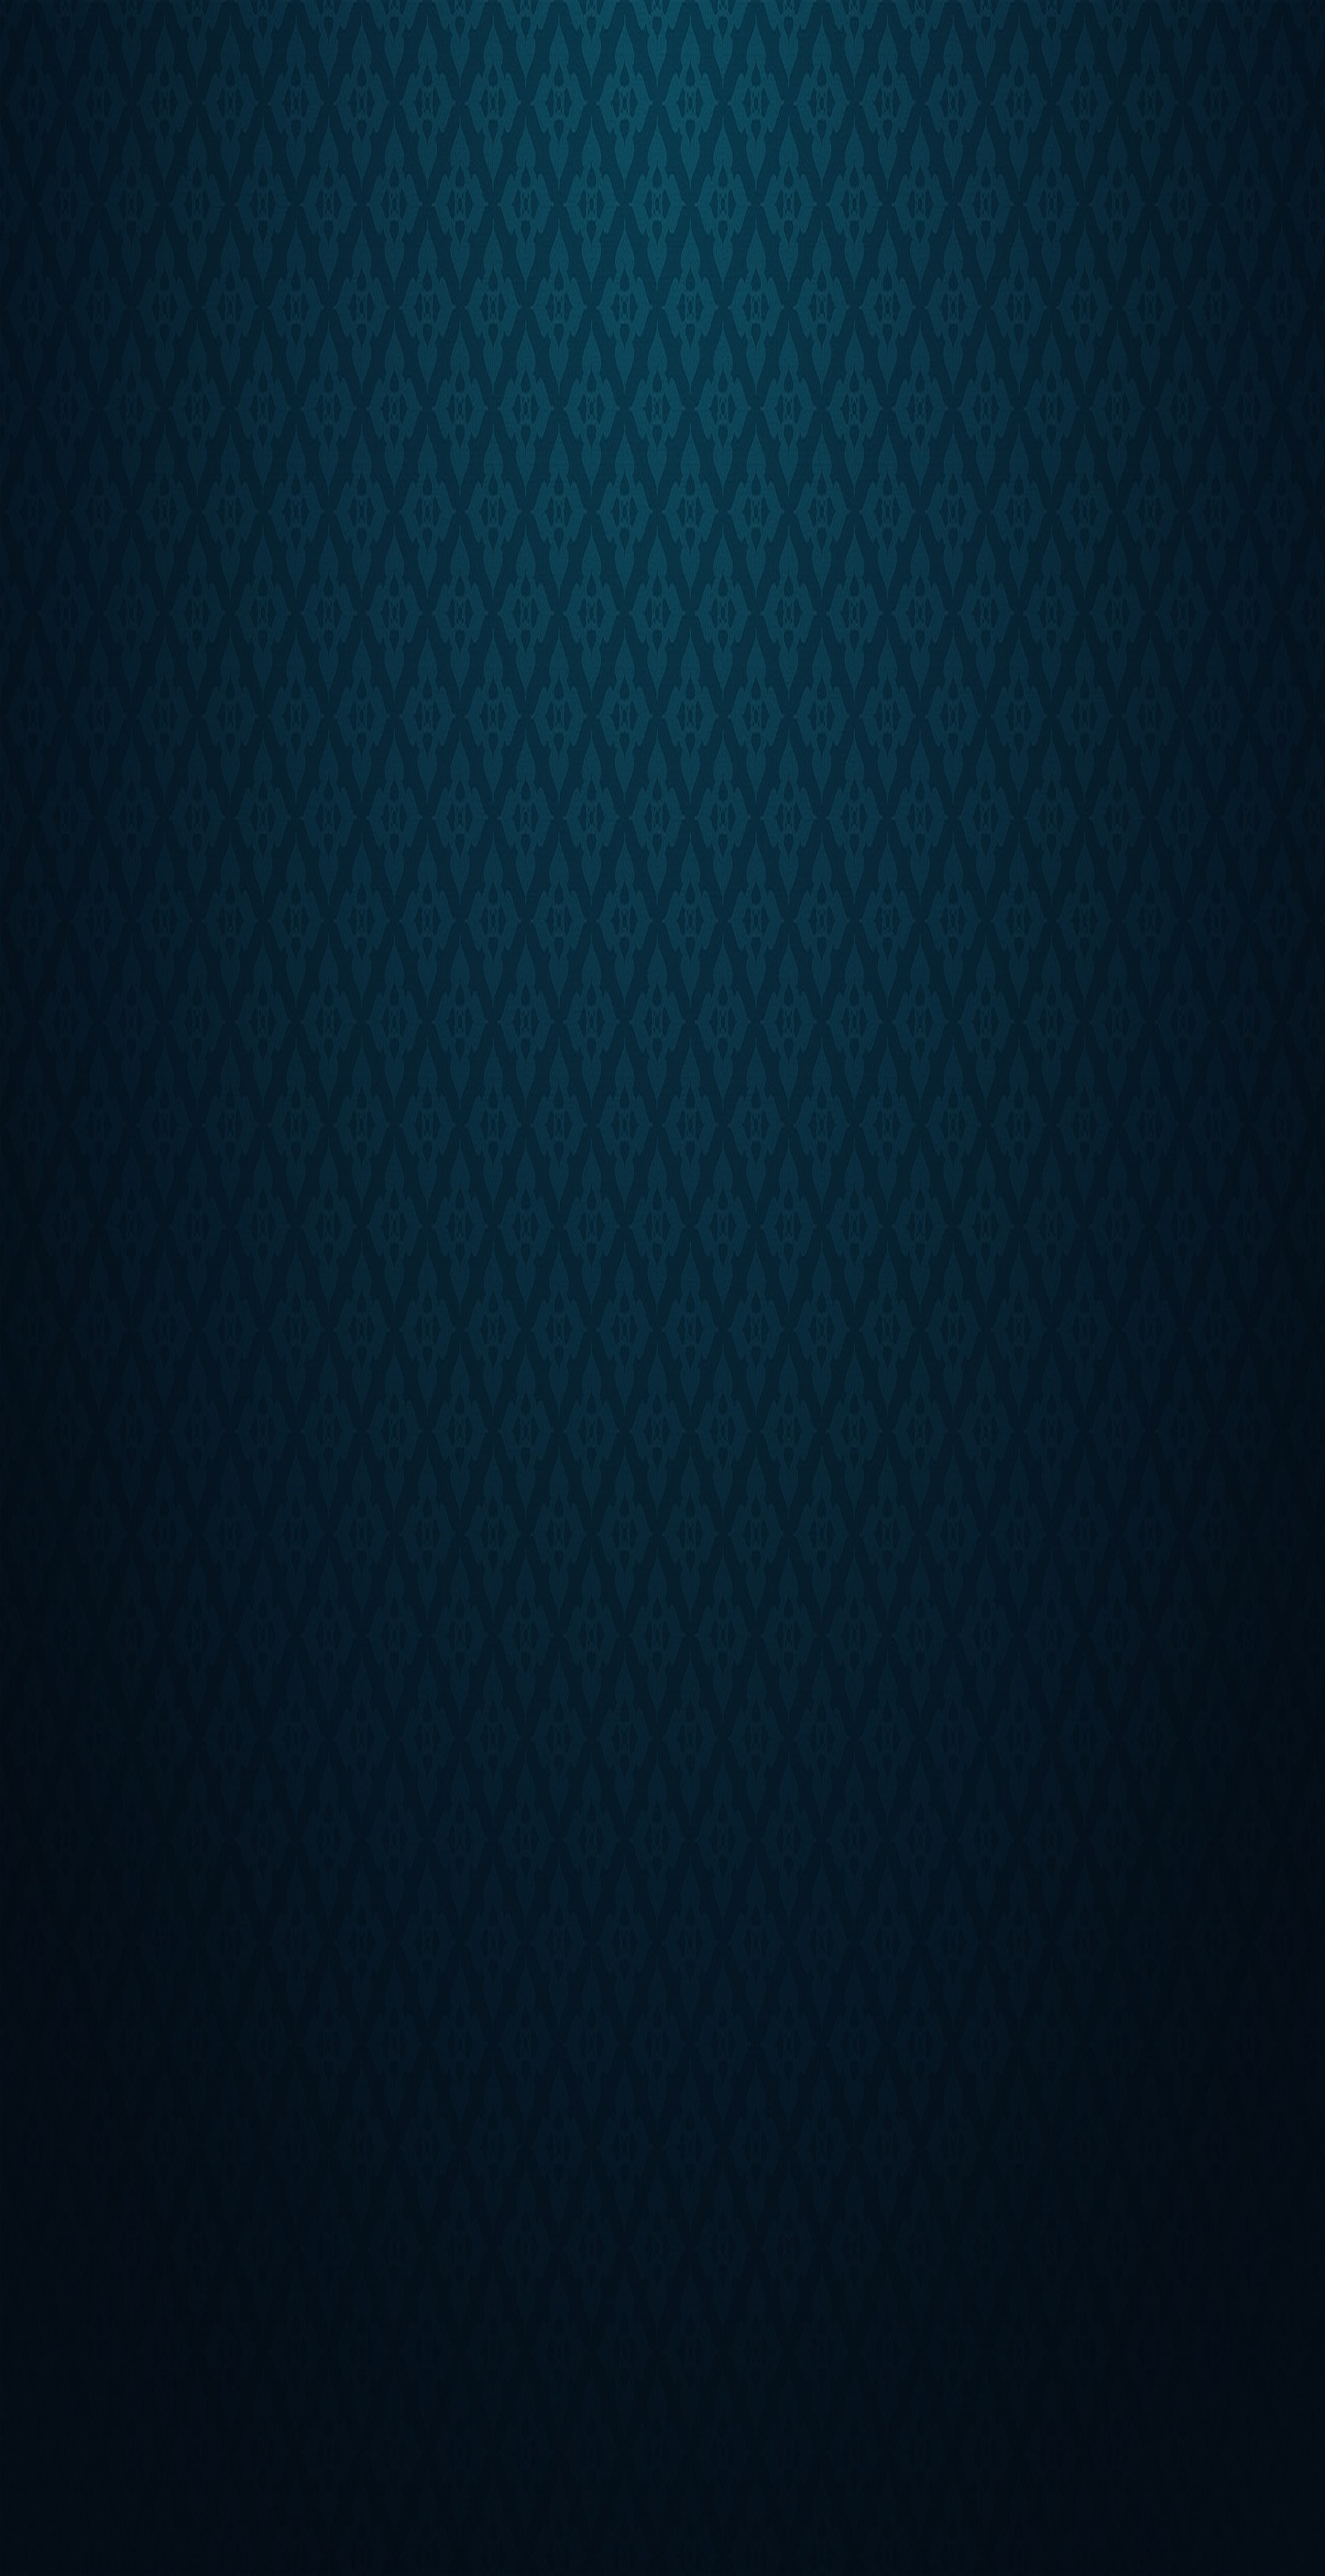 Found At Http Hdwallpapersfit Com Navy Blue Hd Wallpapers Html